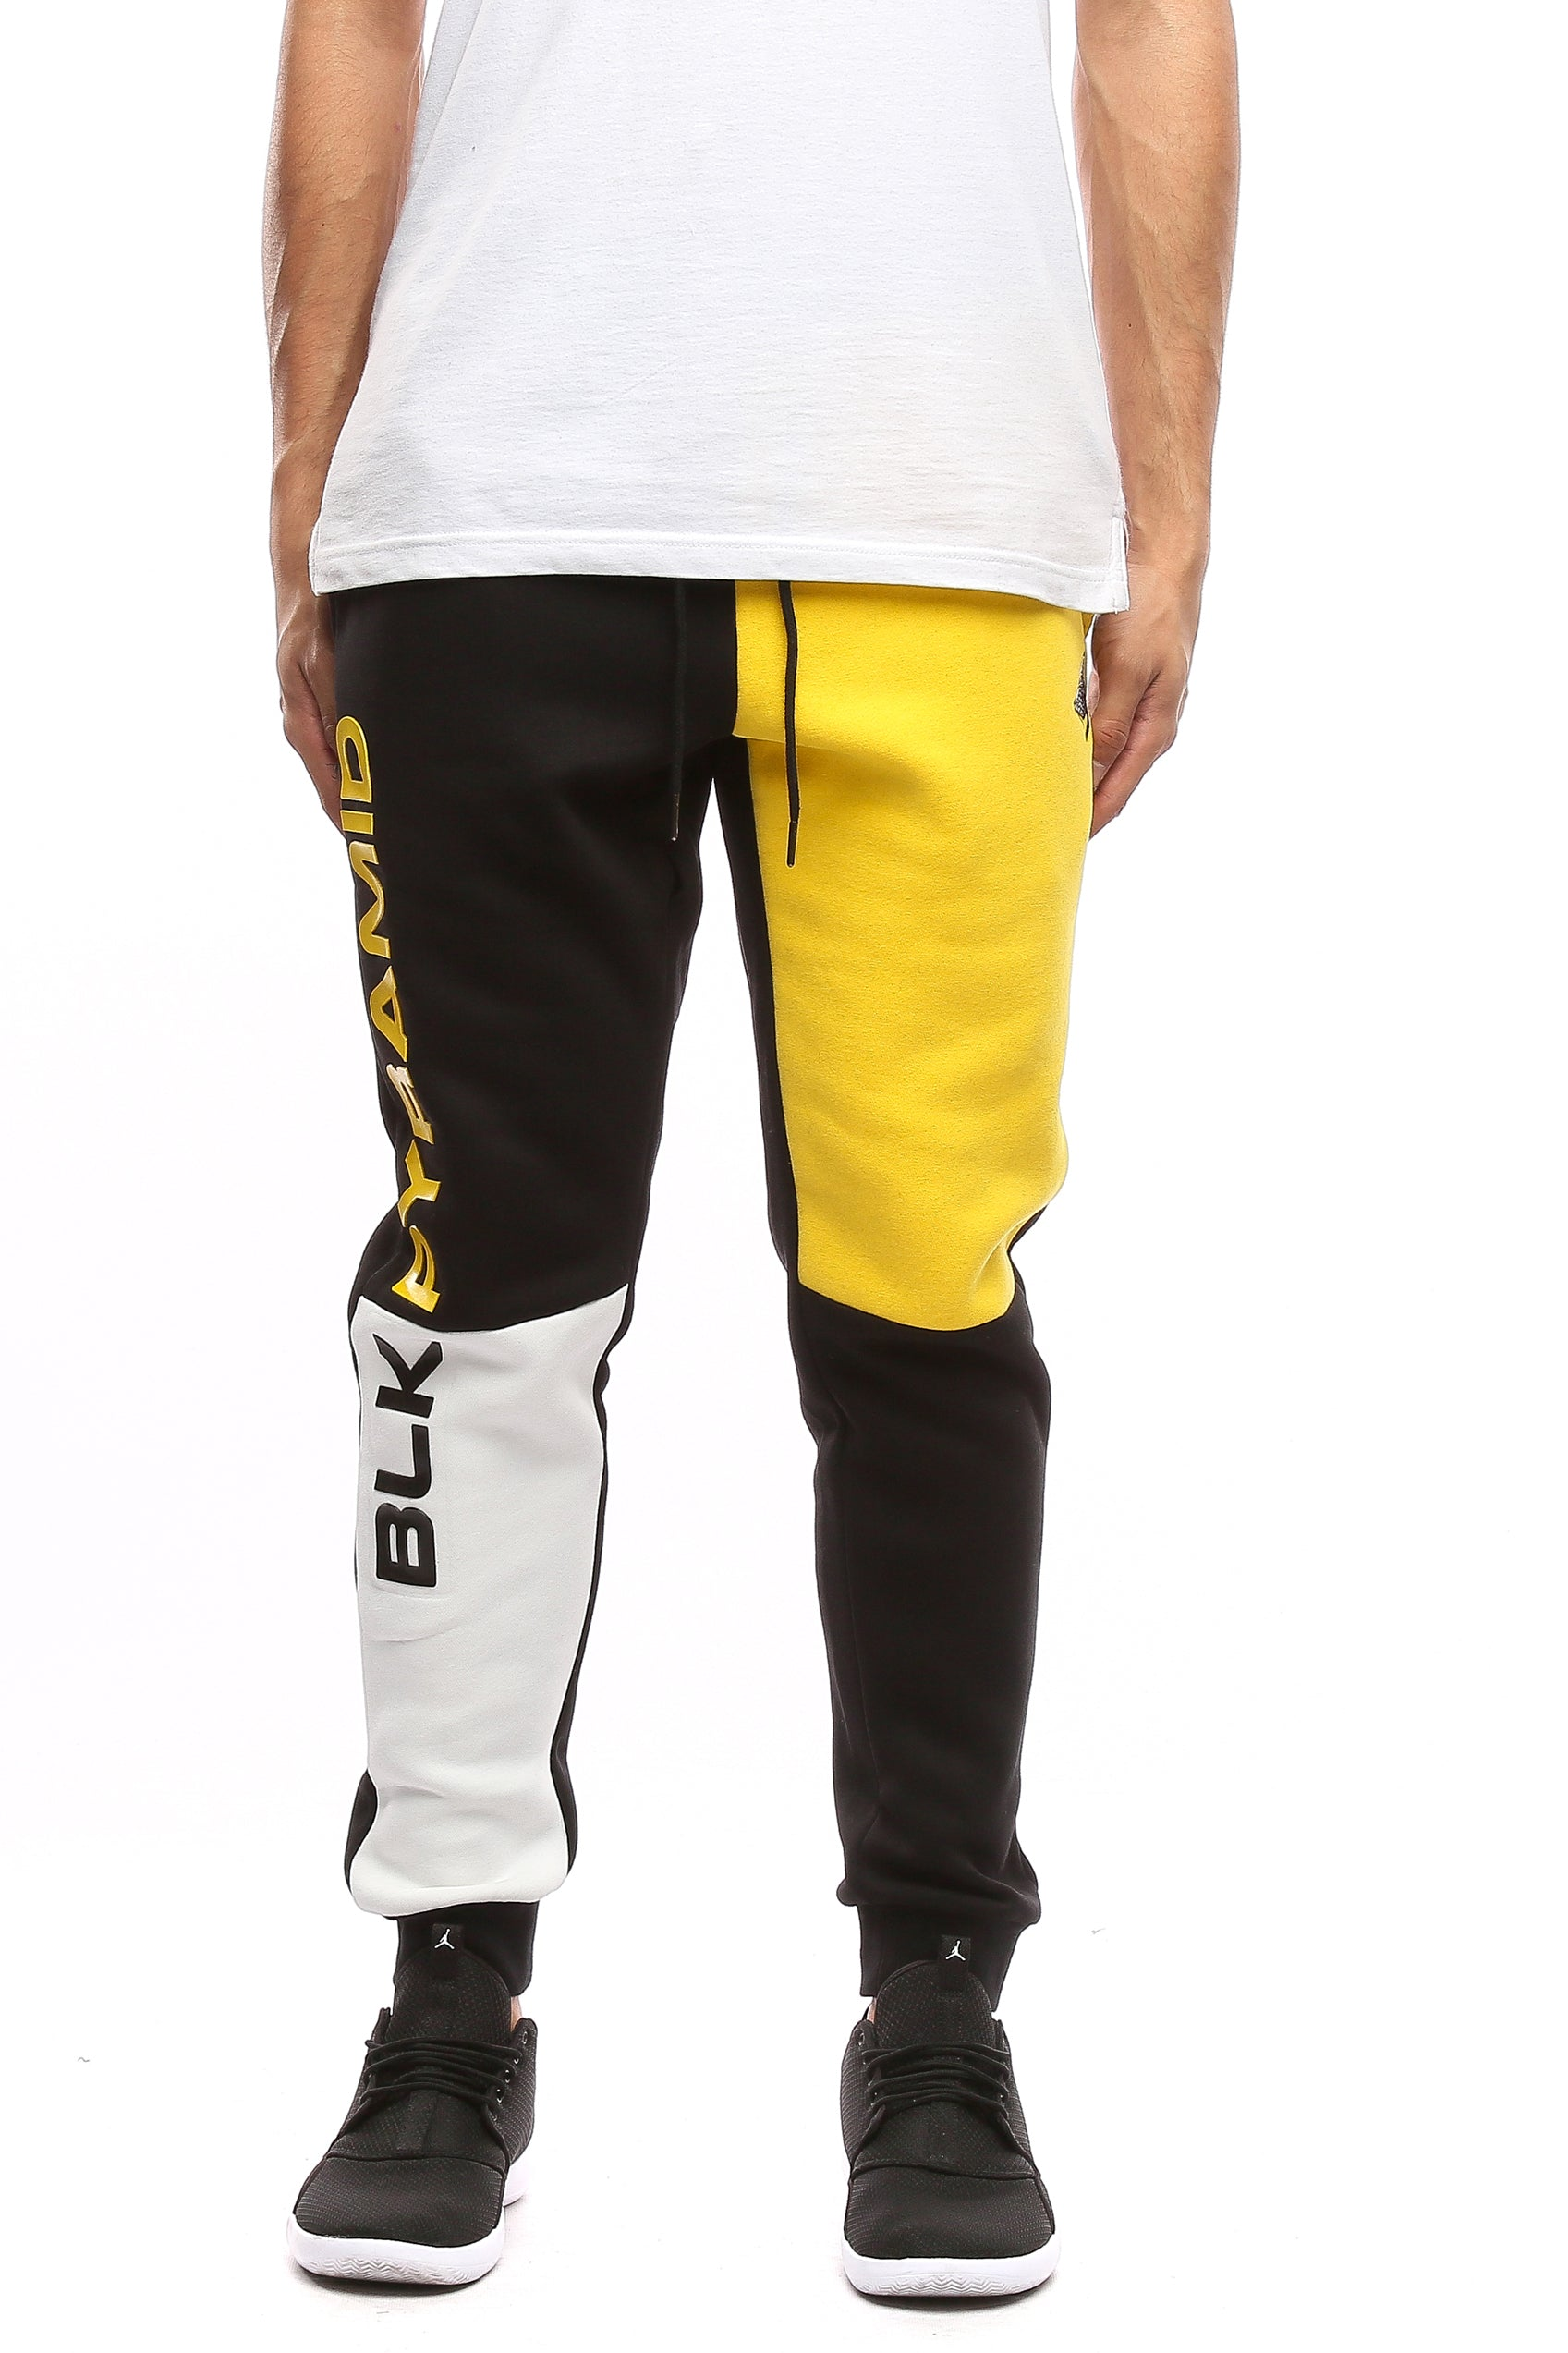 Tironti wind pants from the SS2018 Adidas Originals